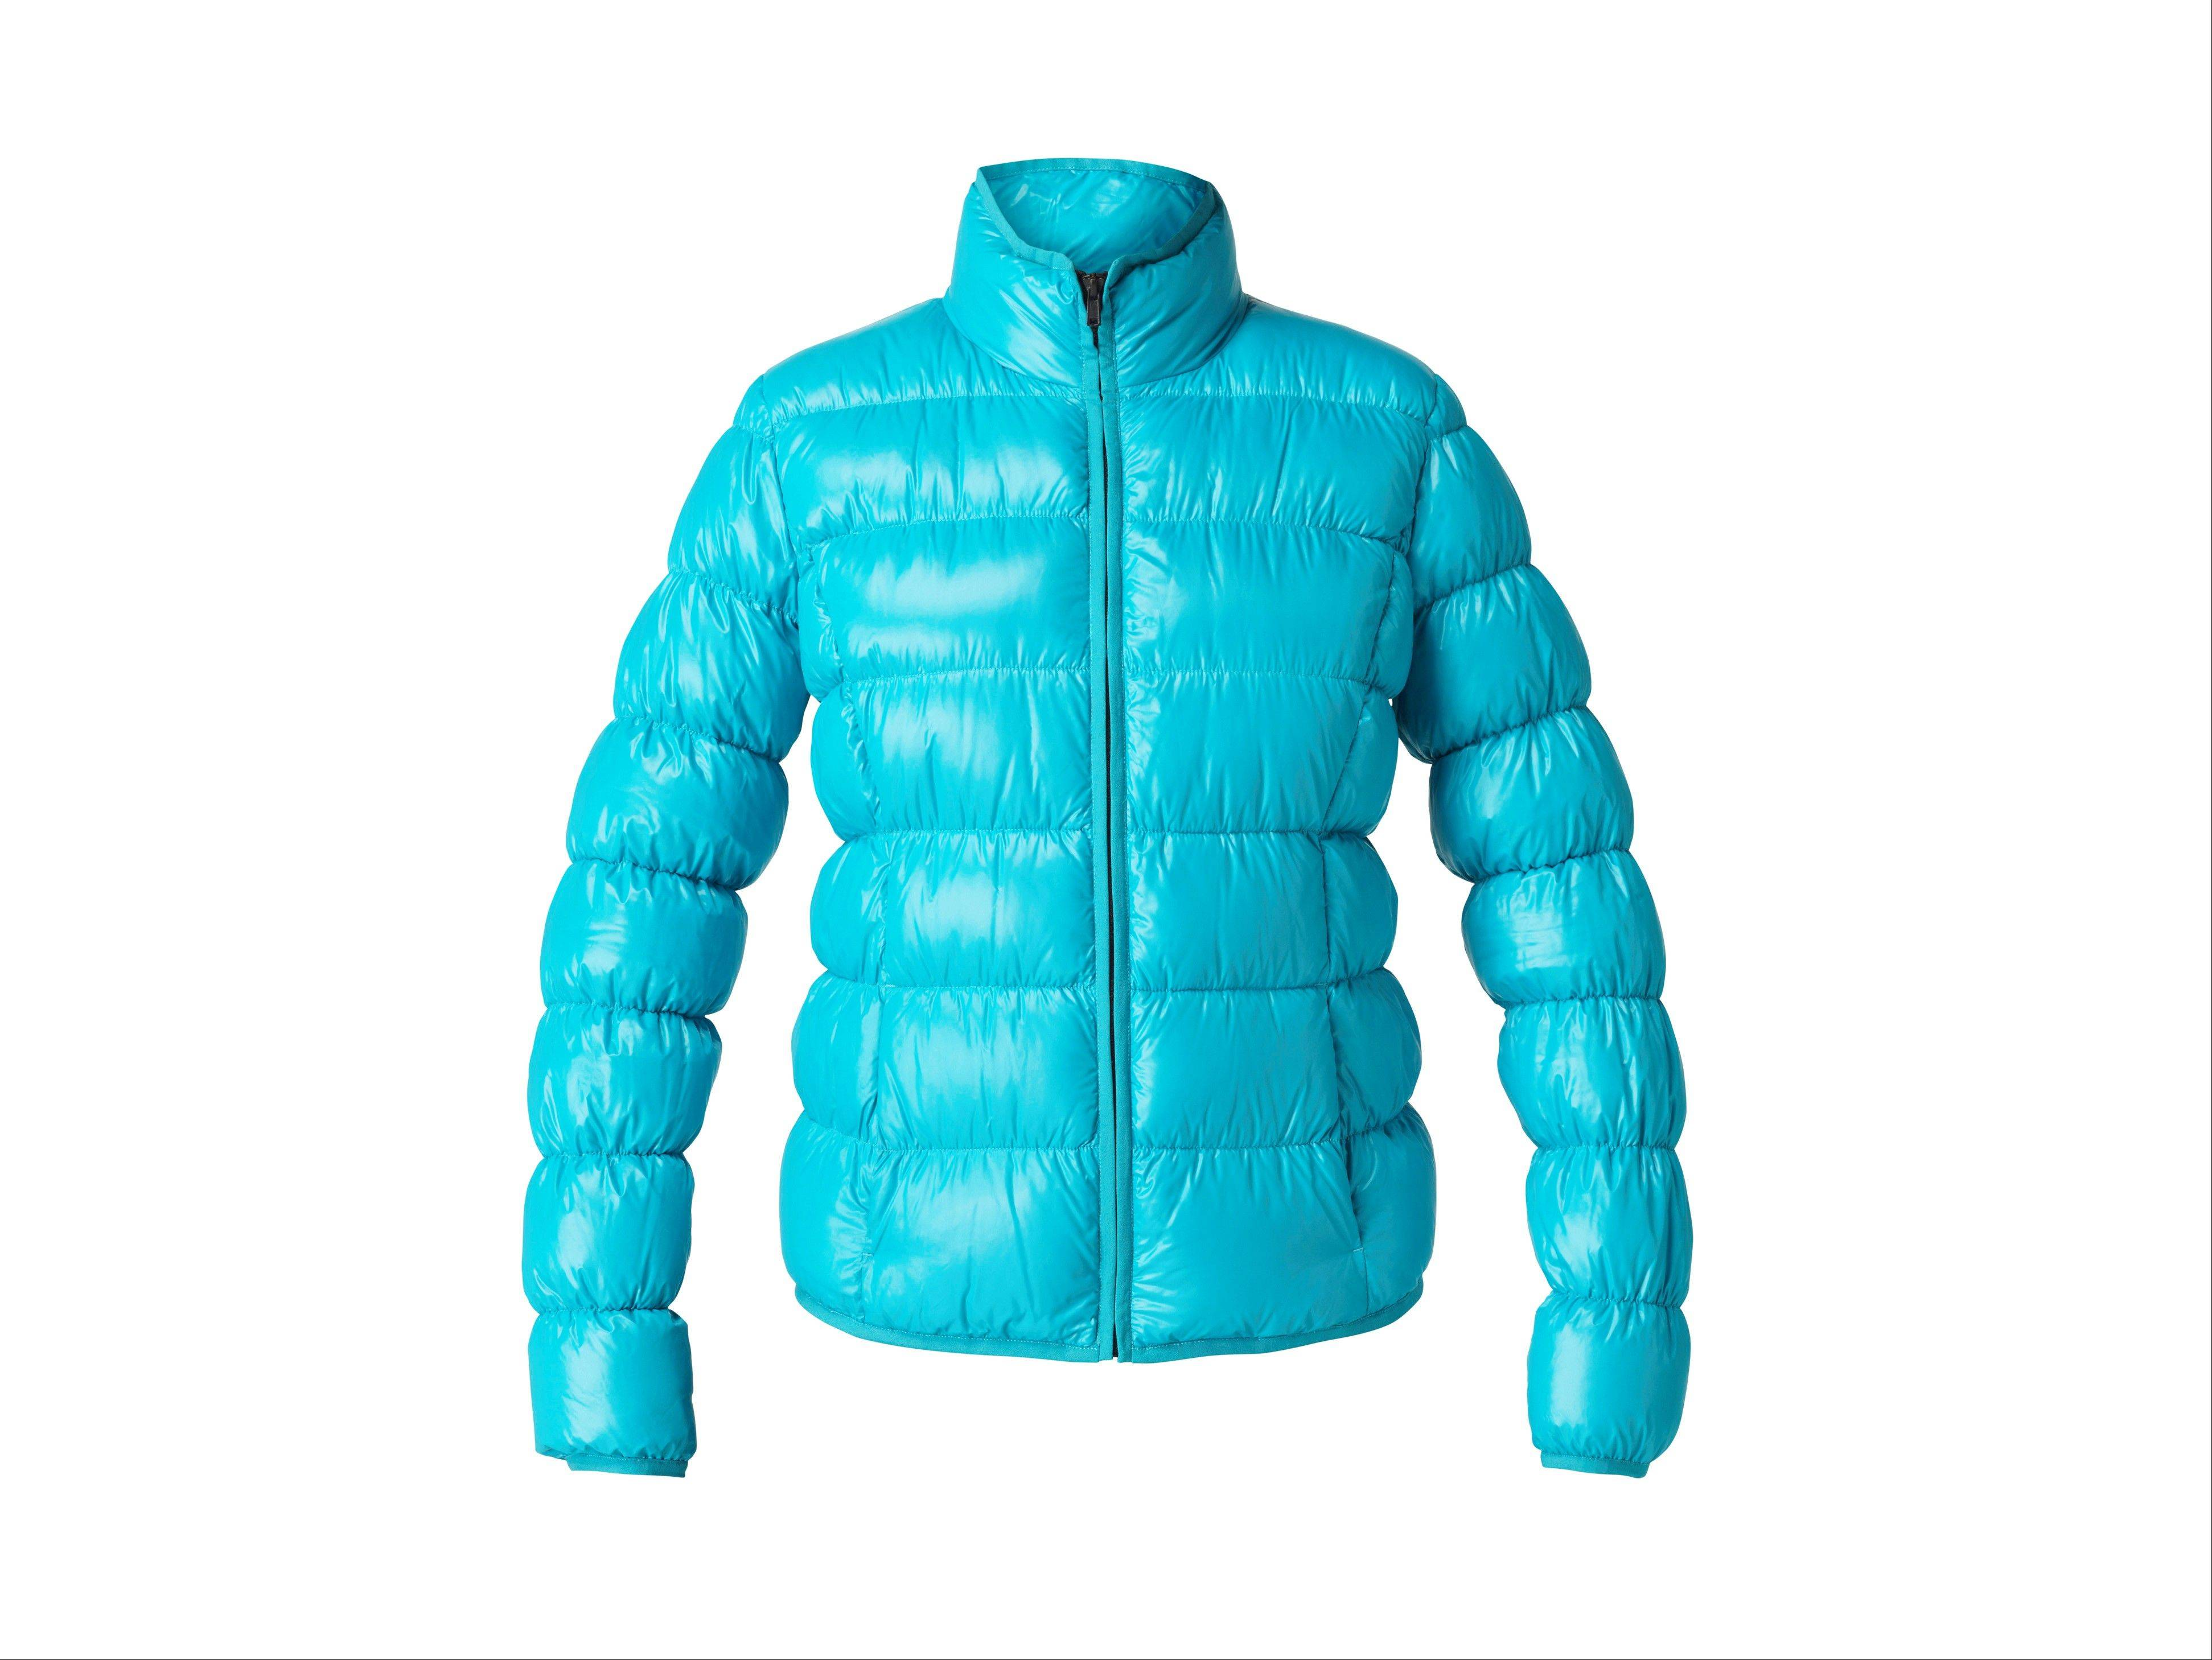 Participation in mud runs and obstacle courses, such as the Warrior Dash or Tough Mudder, is growing by leaps and bounds. The right clothes and gear, like this light blue down jacket, could be the difference in performance and comfort.